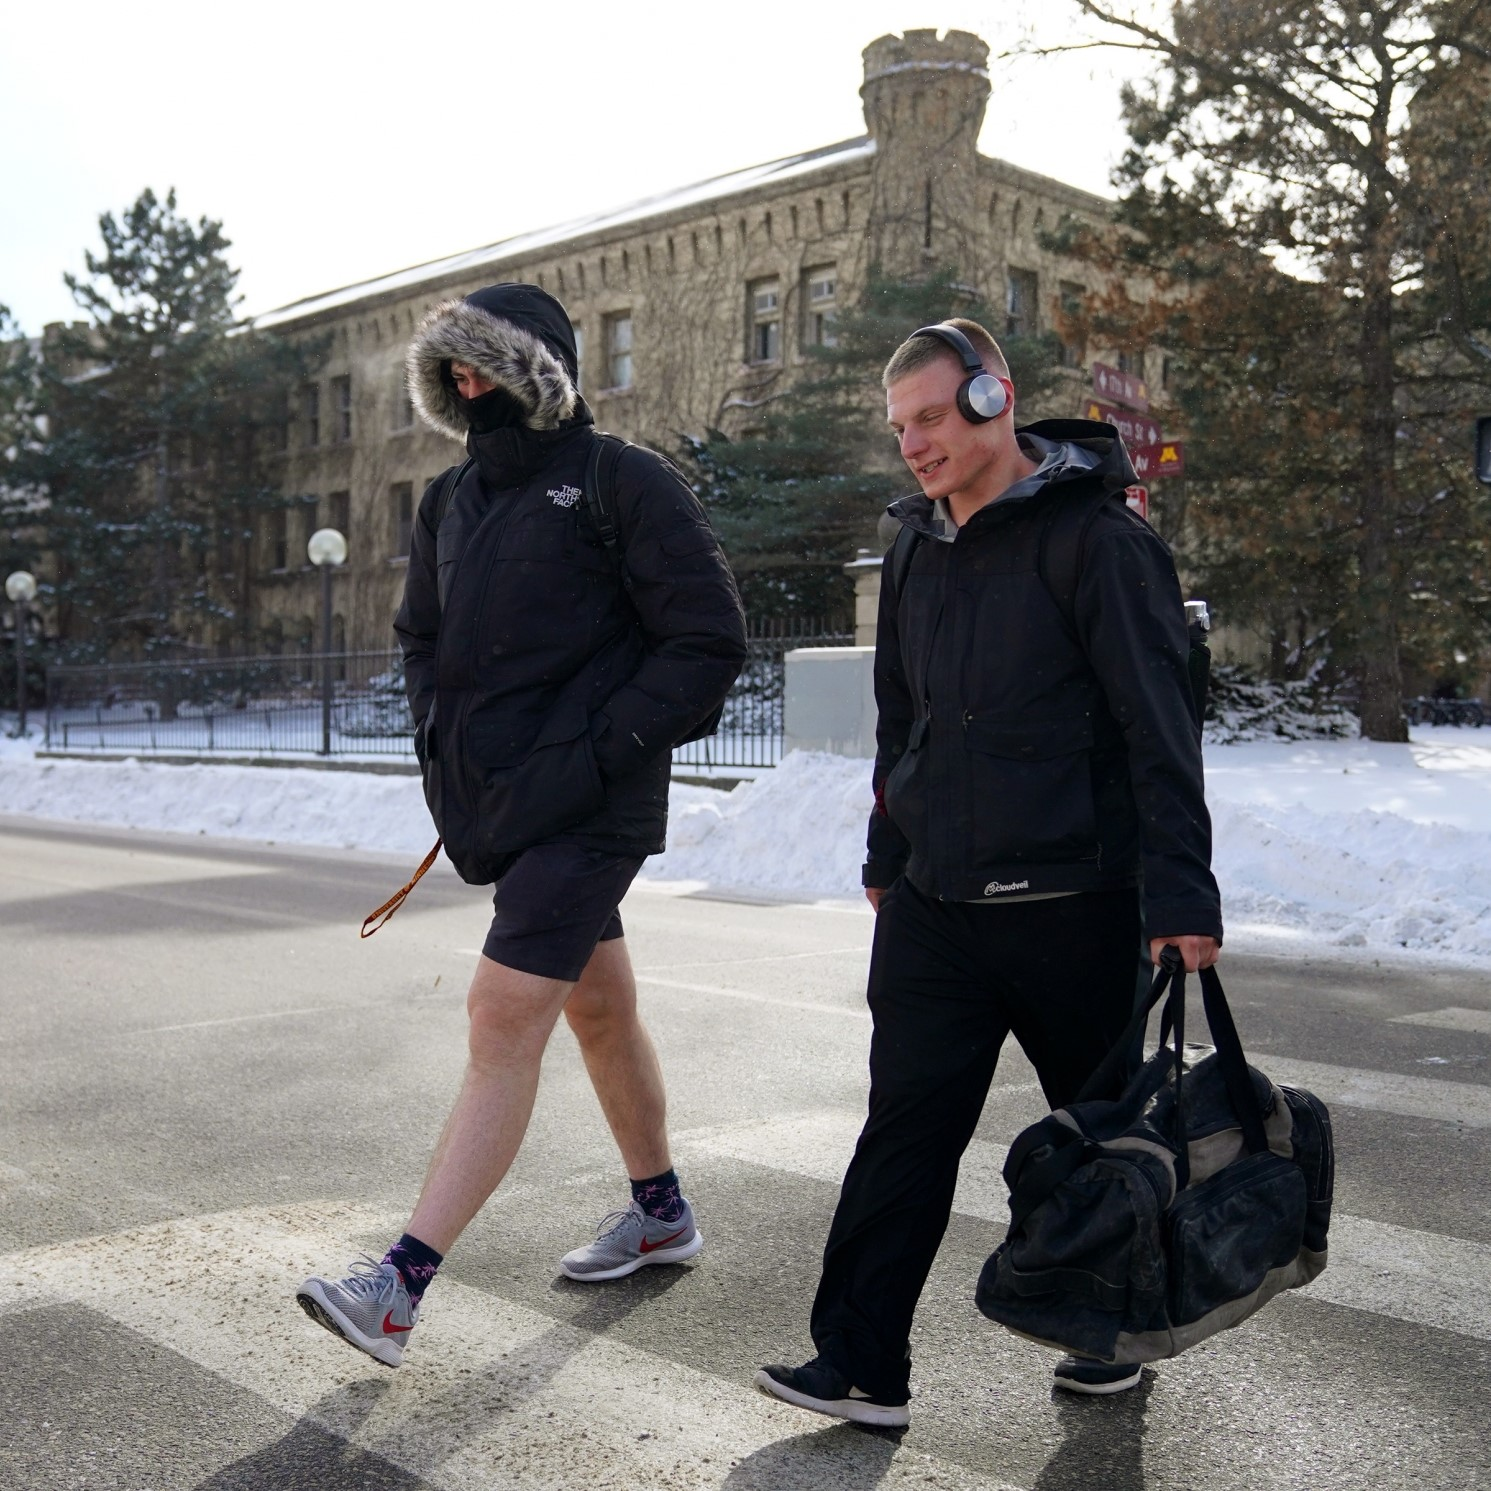 ... Minnesota man wears shorts during the state s deepest freeze in  decades, which can lead to f5932011a6